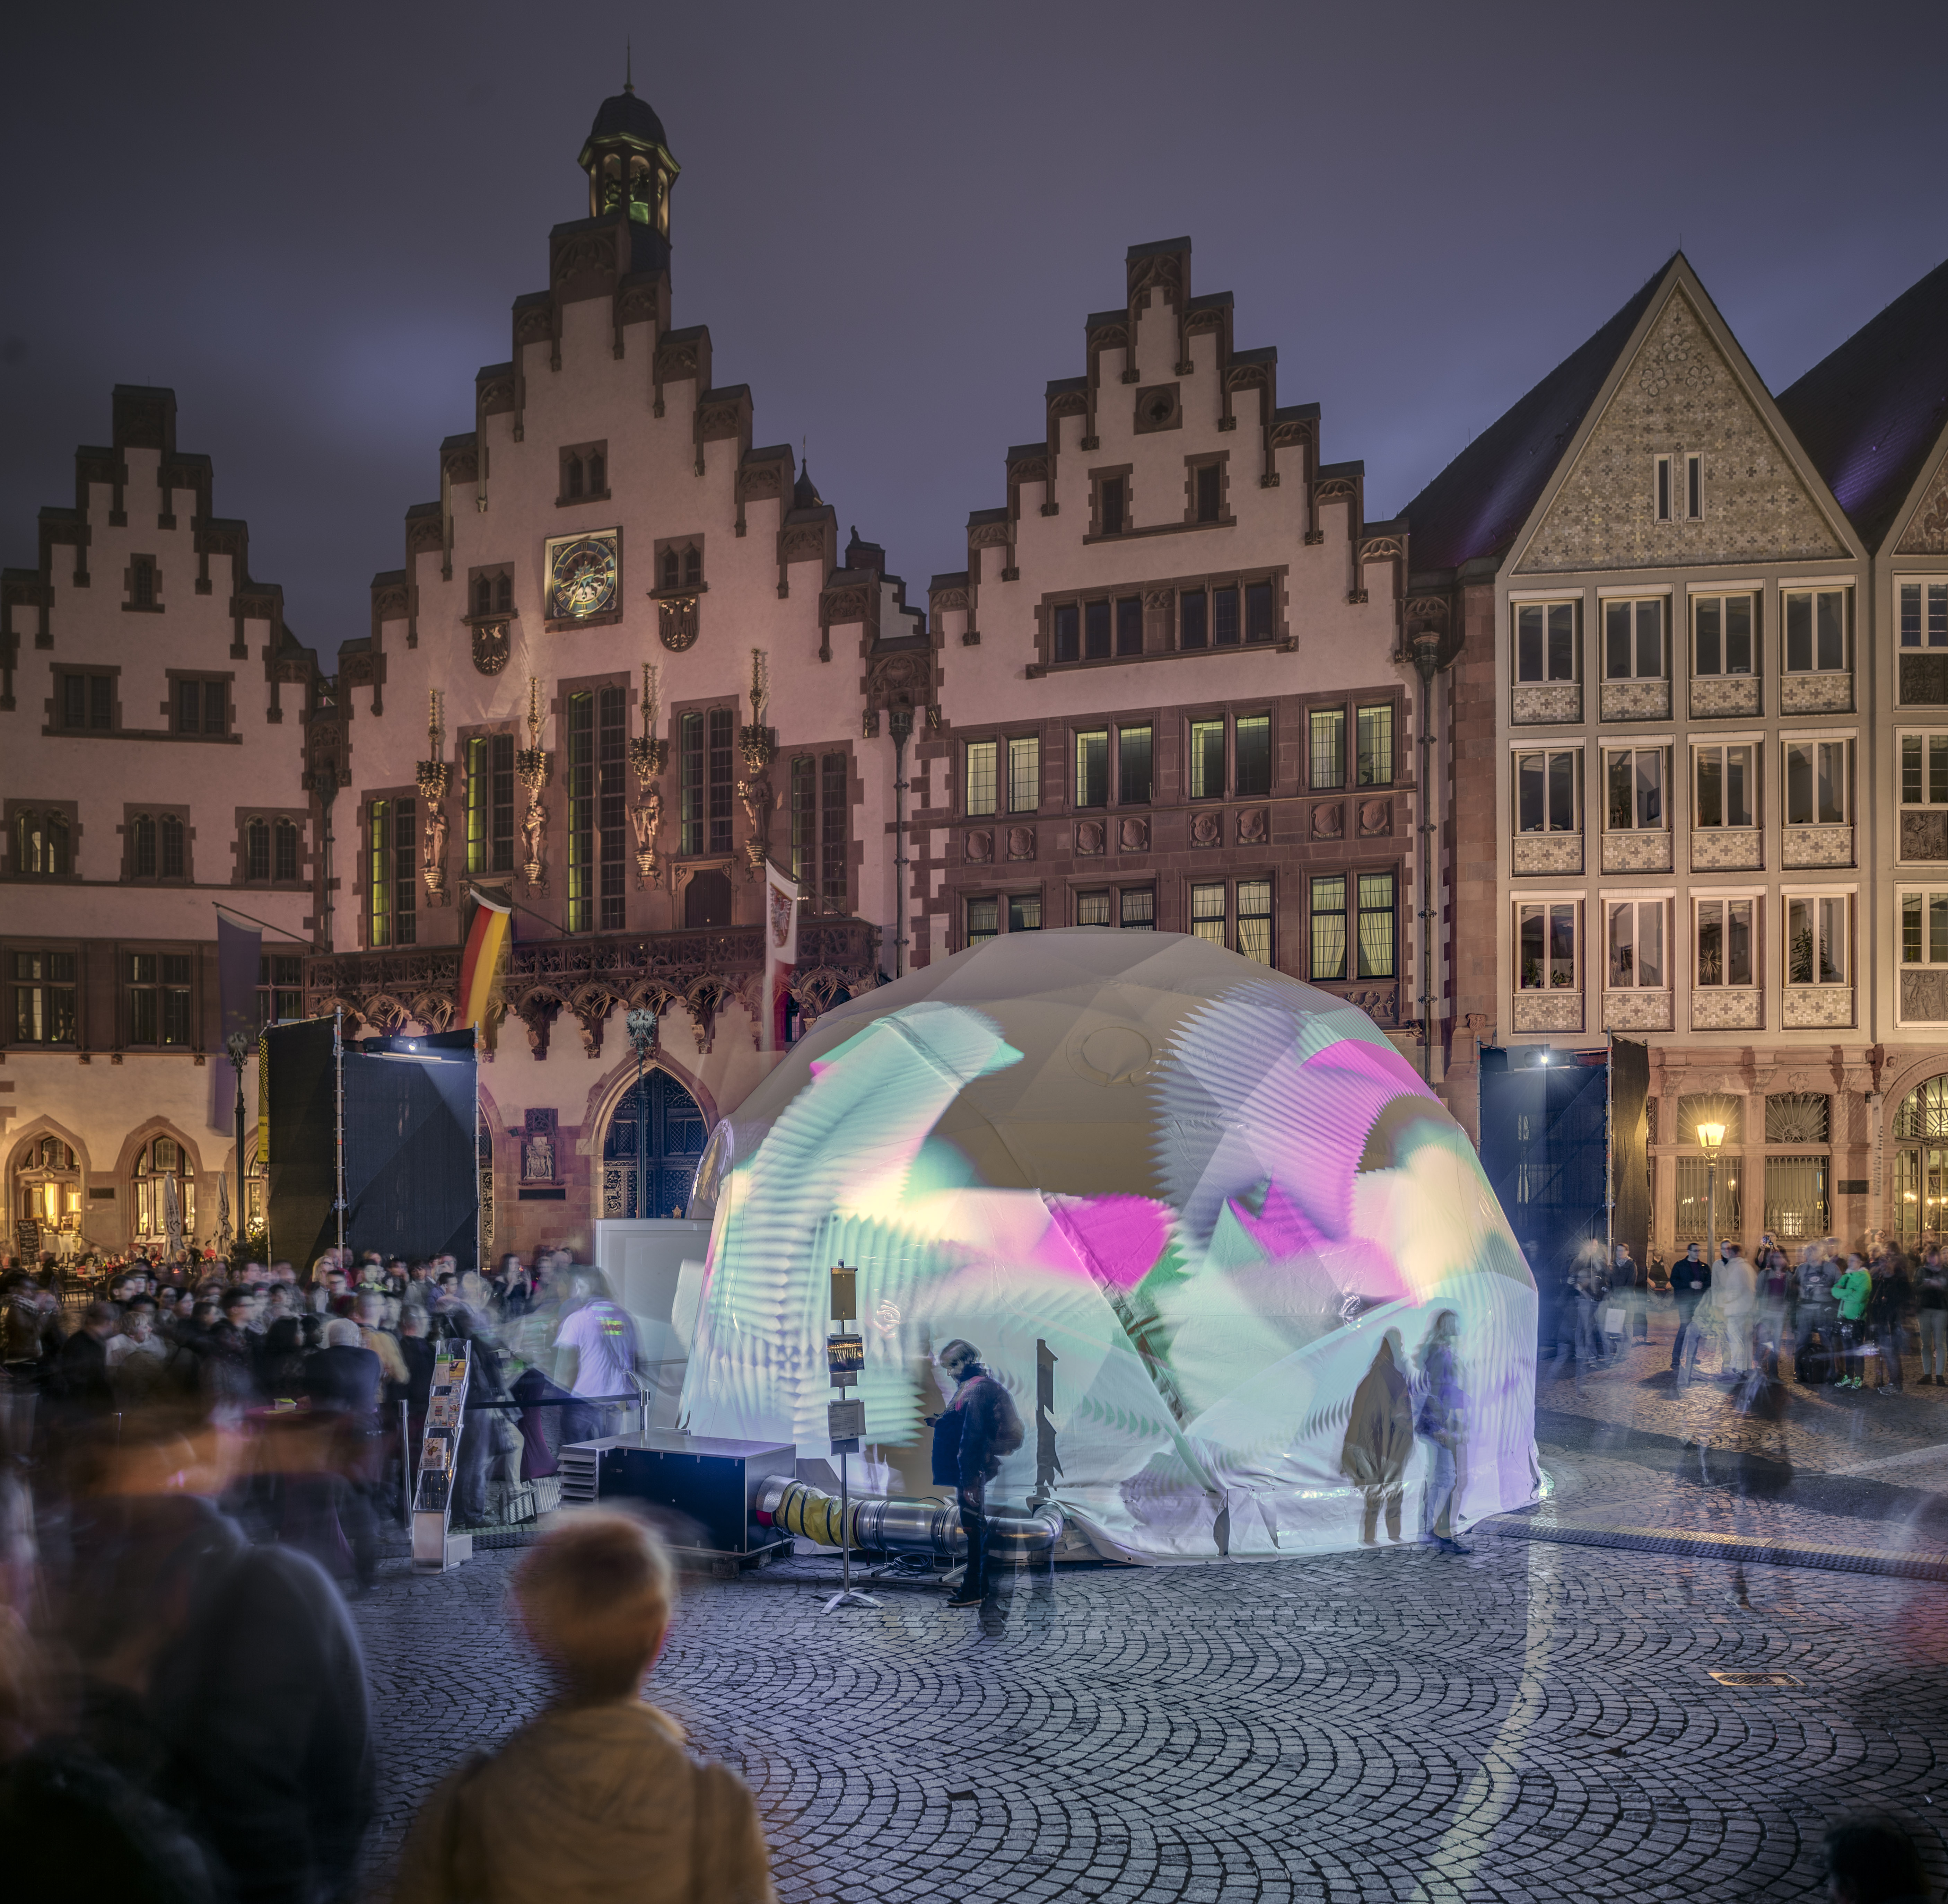 053 - Morgen ist Jetzt / Tomorrow is Now, Luminale 2014